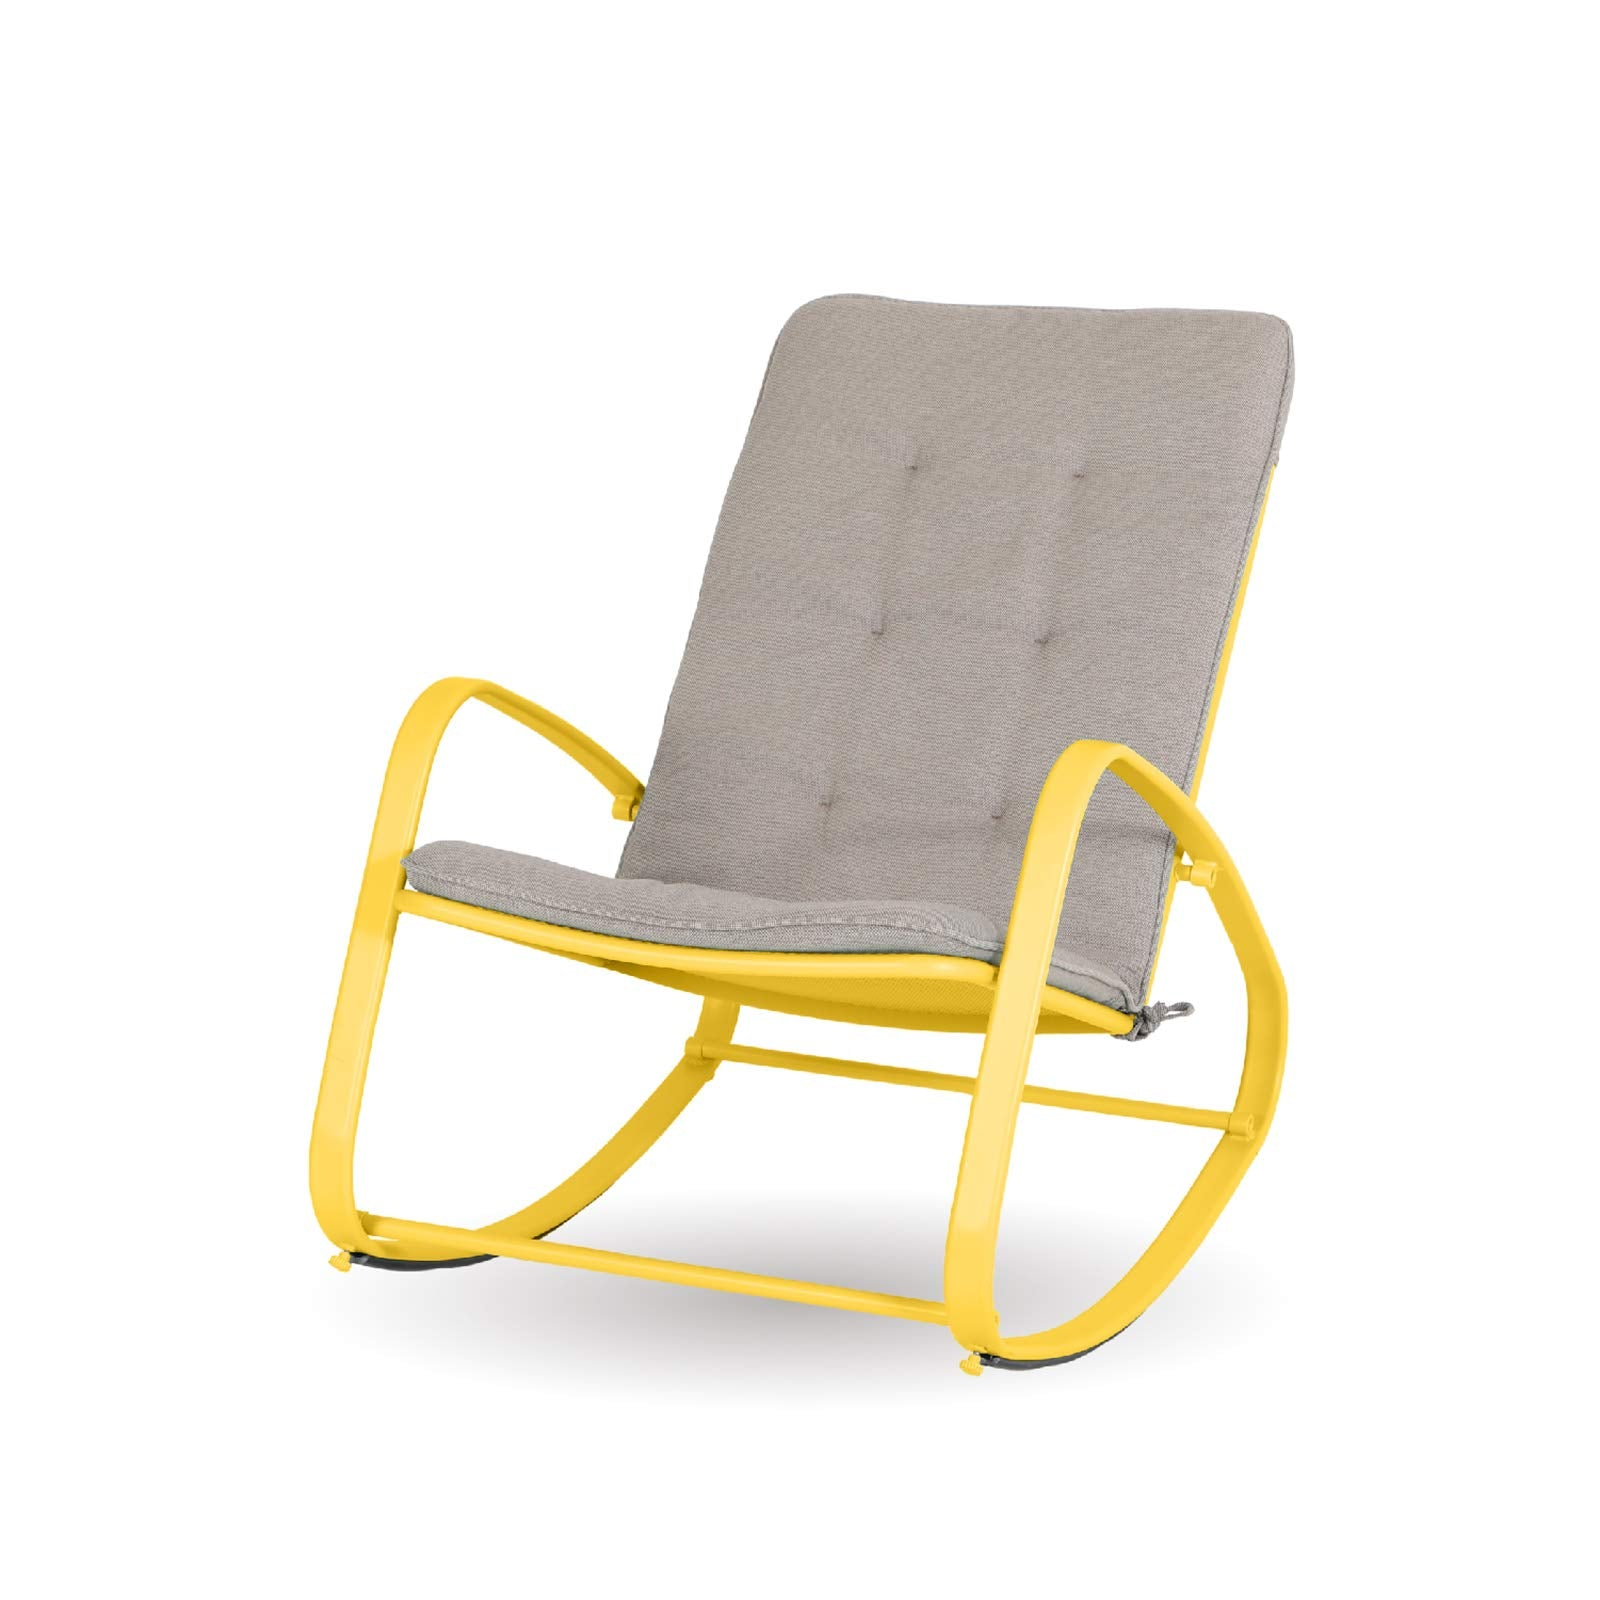 Alphamarts coupon: Sophia & William Outdoor Patio Rocking Chair Padded Steel Rocker Chairs Support 300lbs Yellow